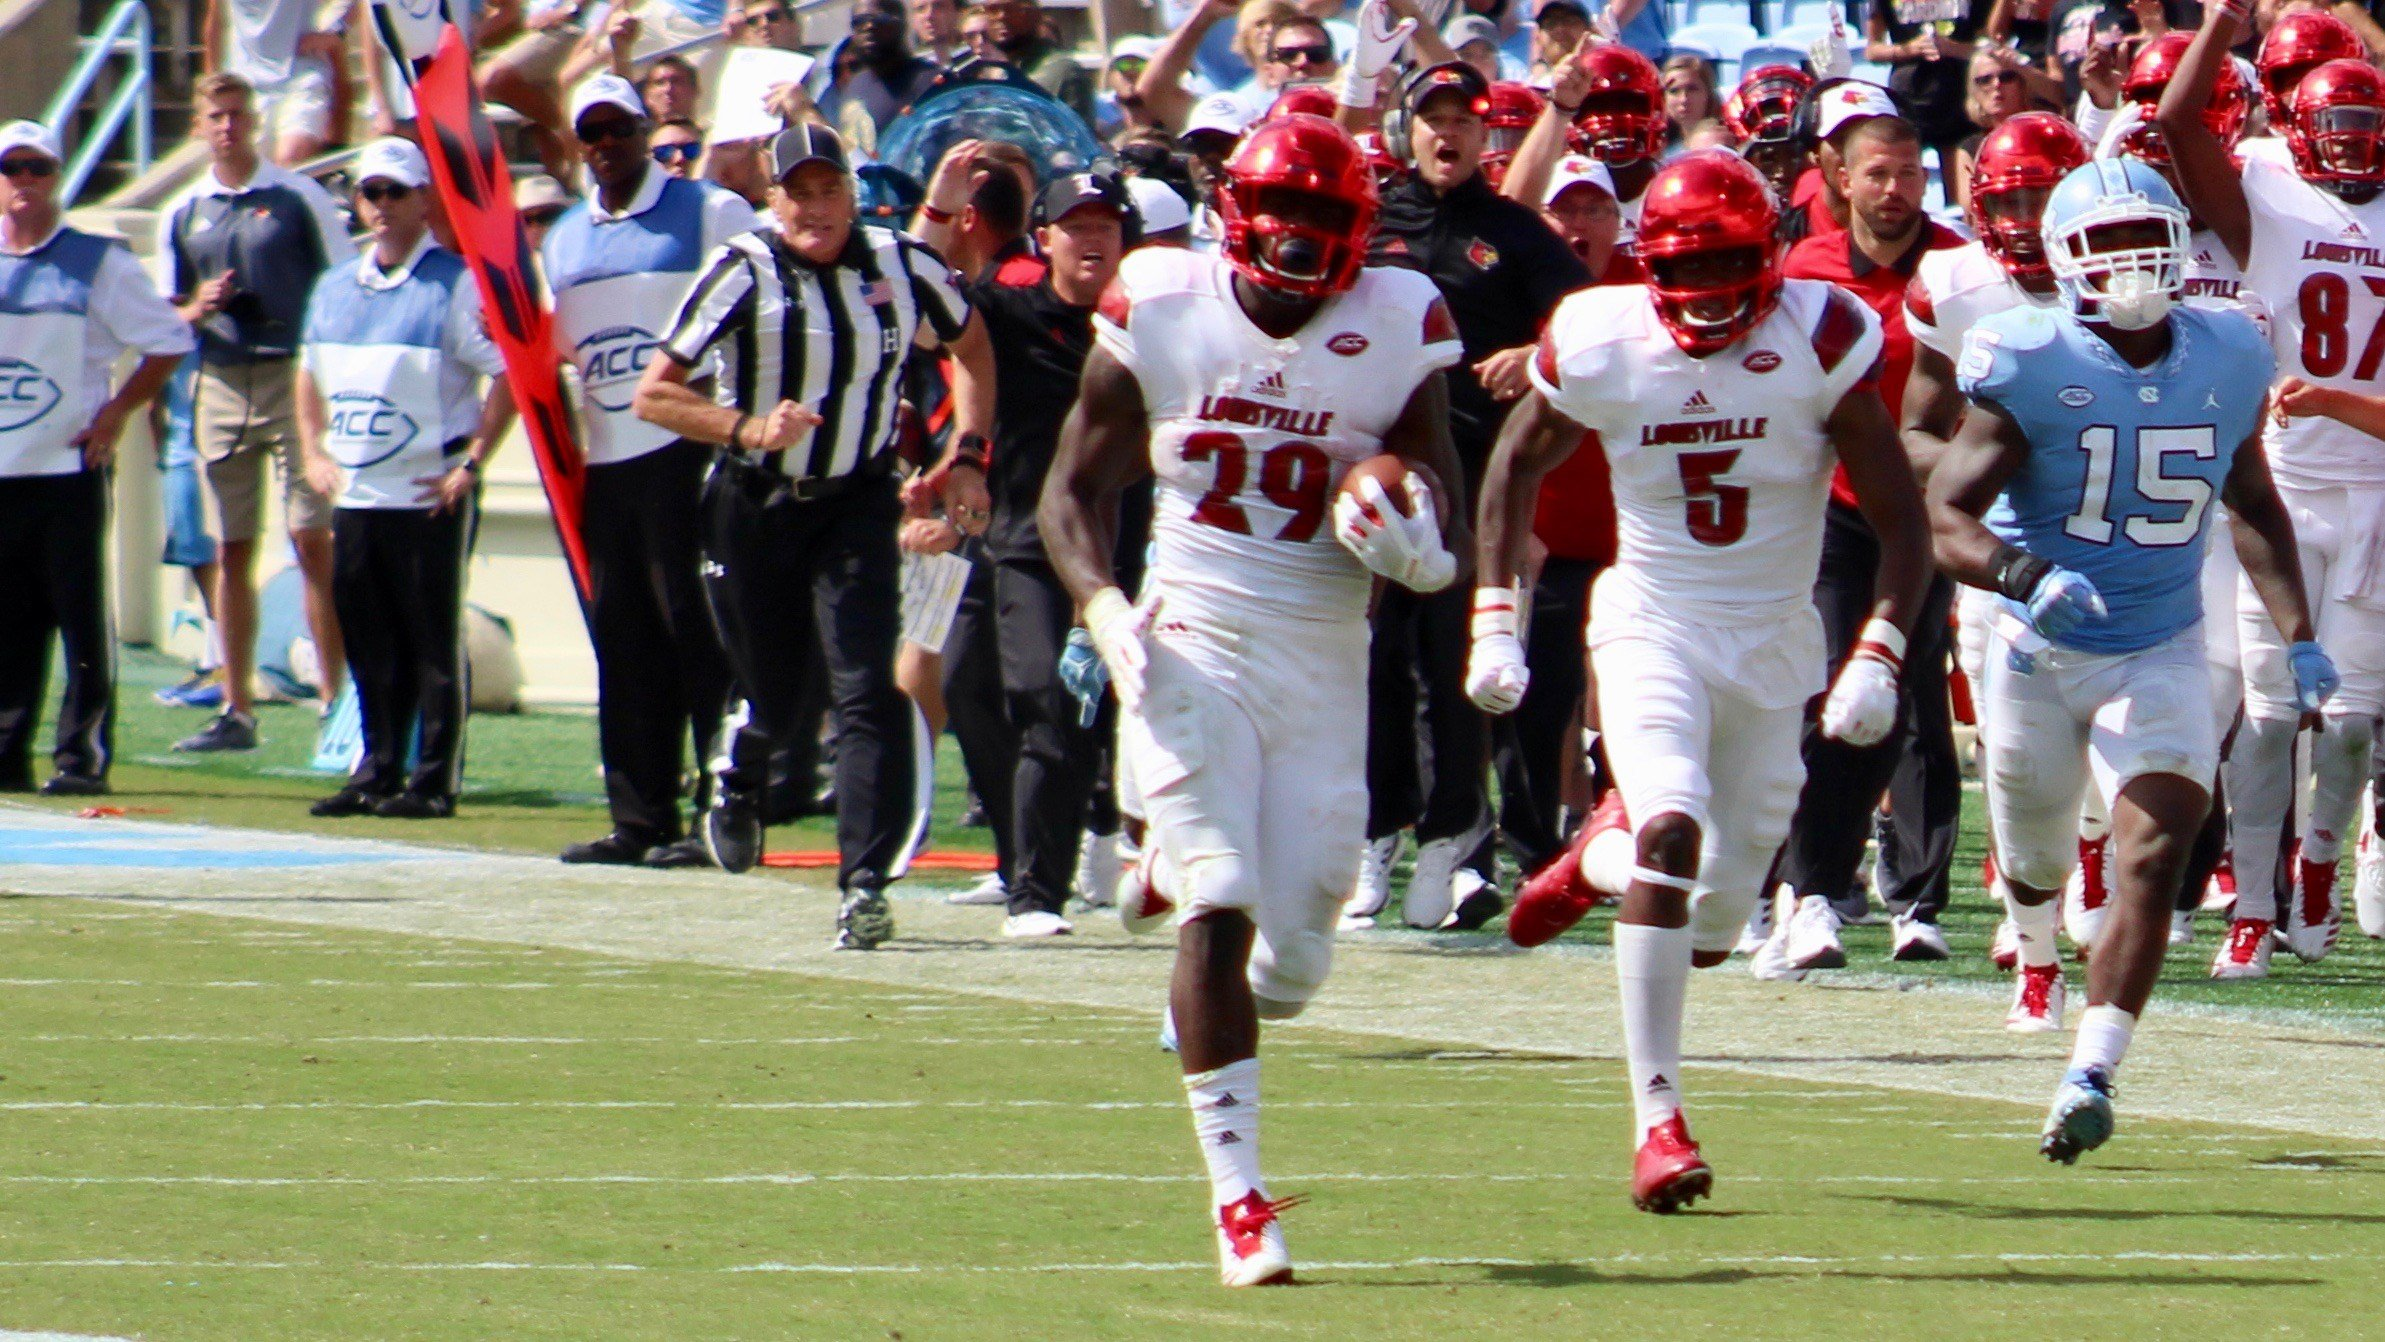 Malik Williams breaks free for a 74-yard run. (WDRB photo by Eric Crawford)